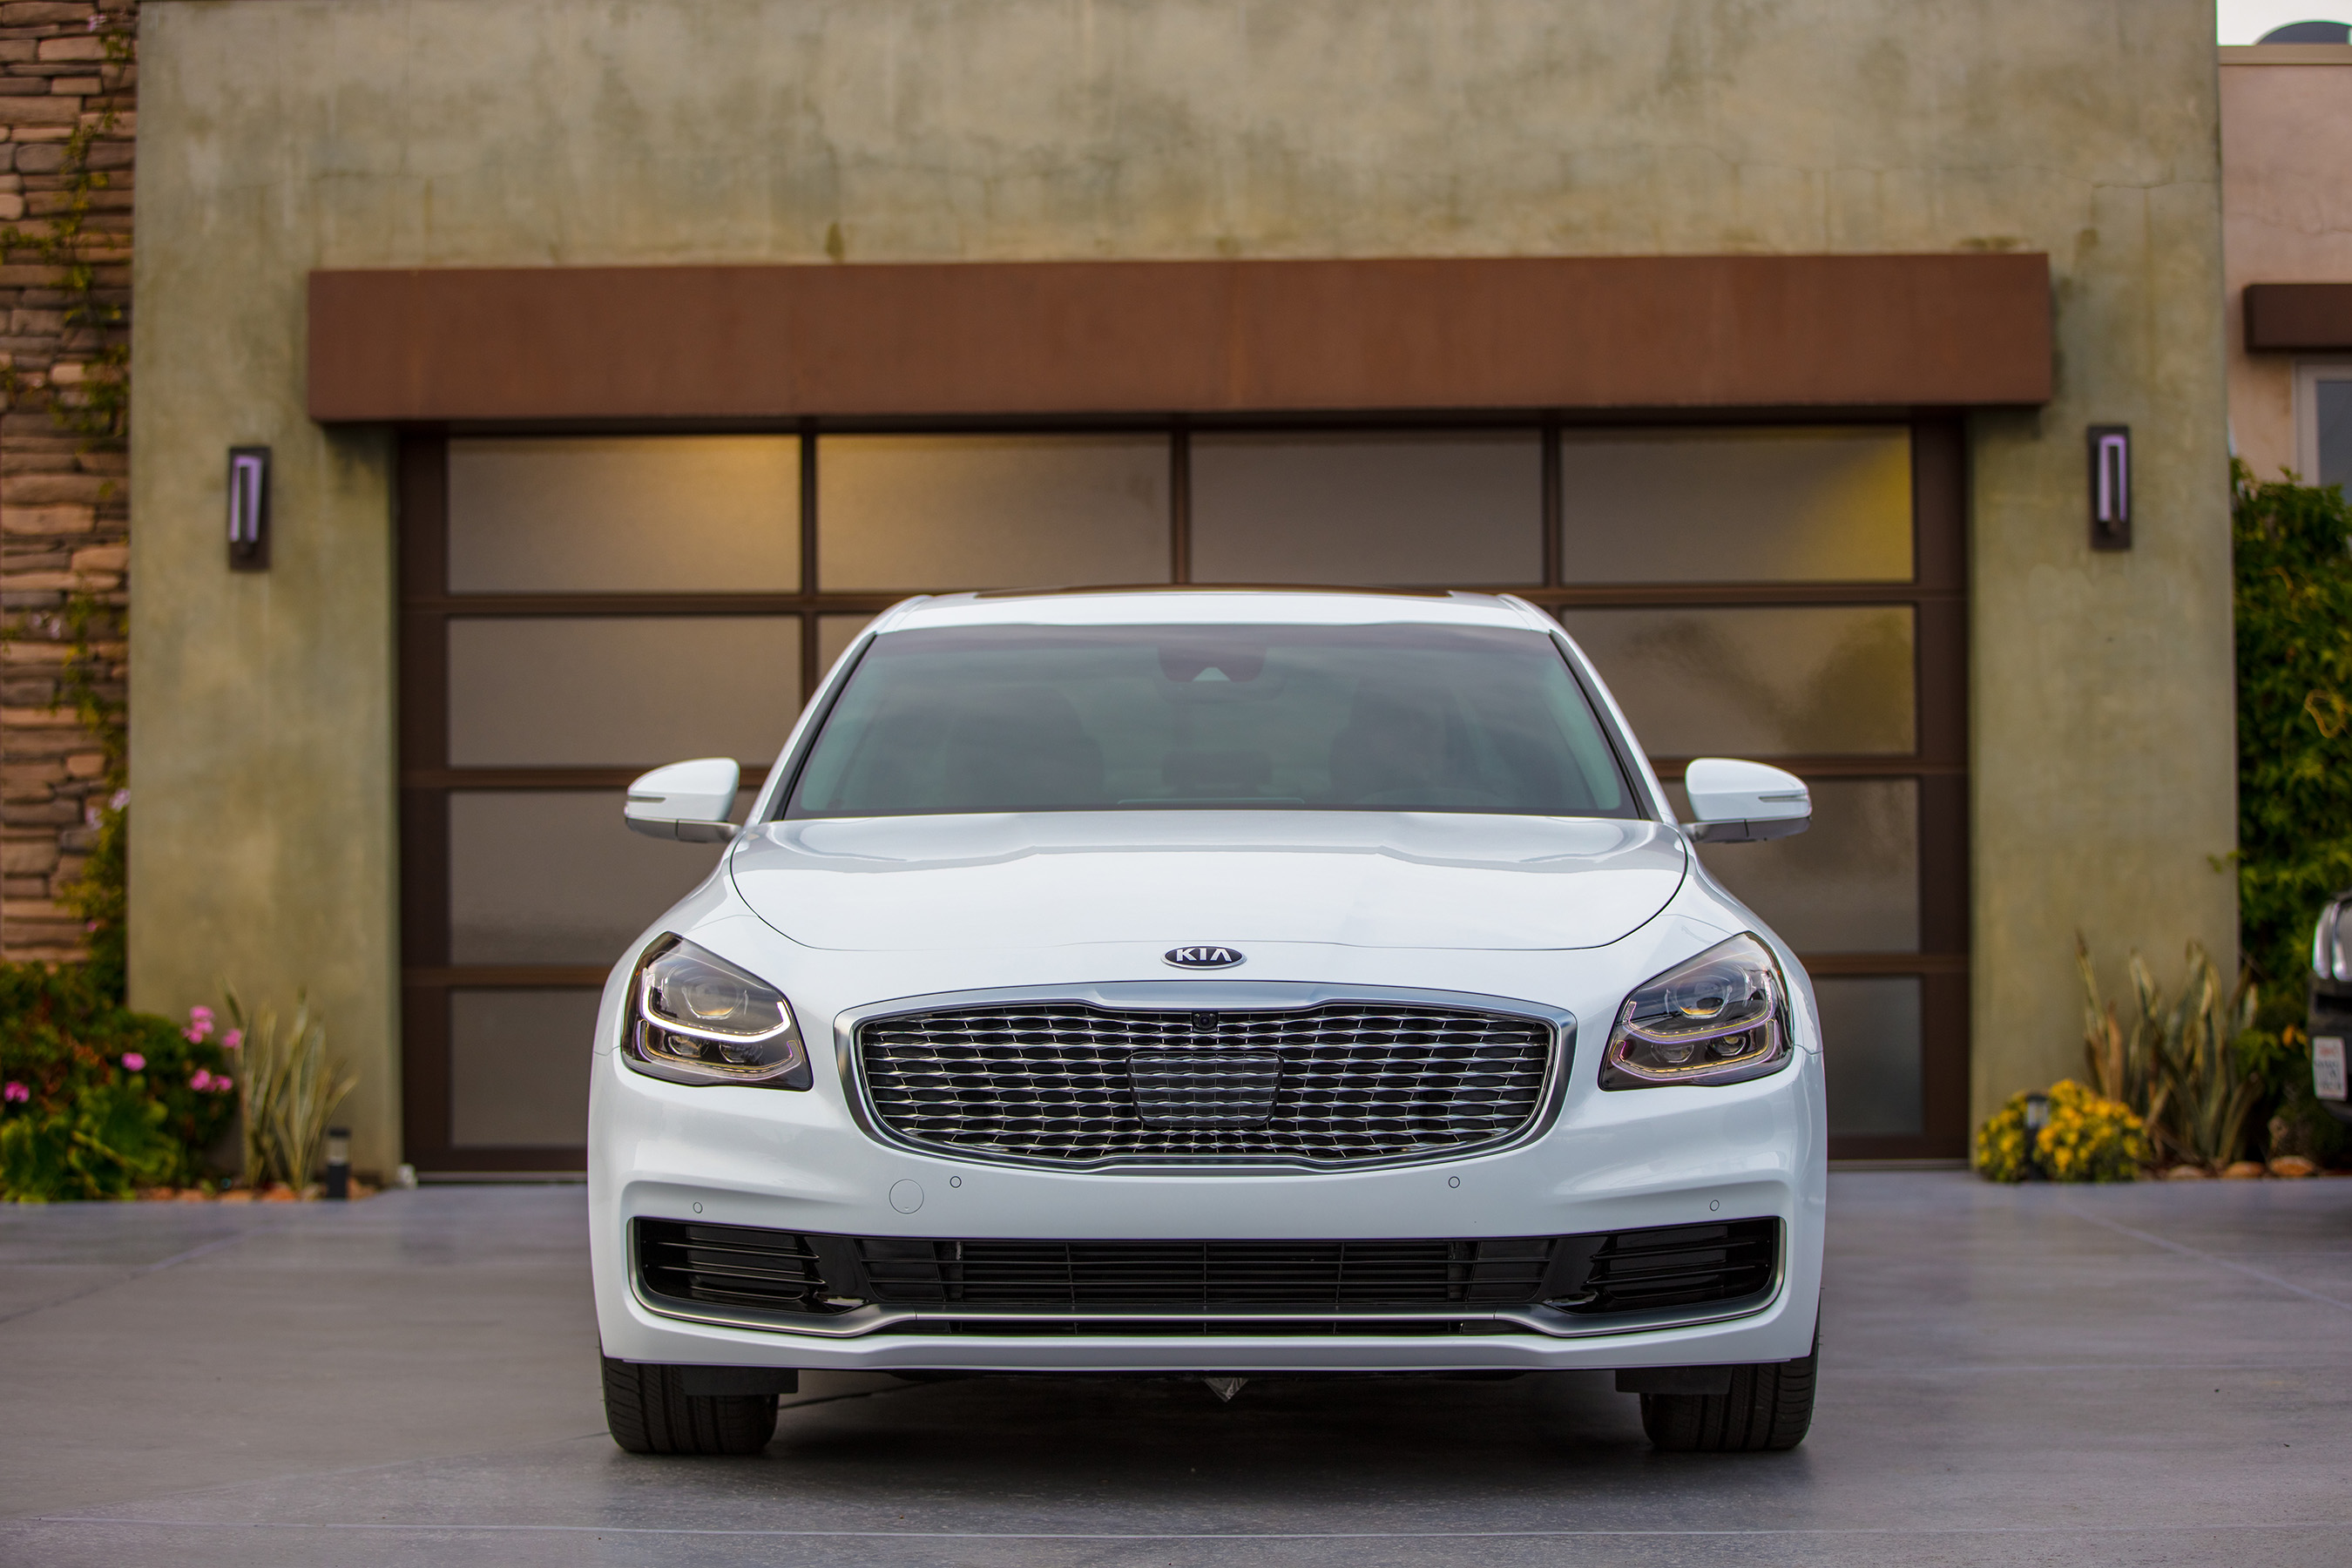 Sophisticated and stately, the entirely redesigned K900 brings a new definition of premium luxury to the Kia portfolio.